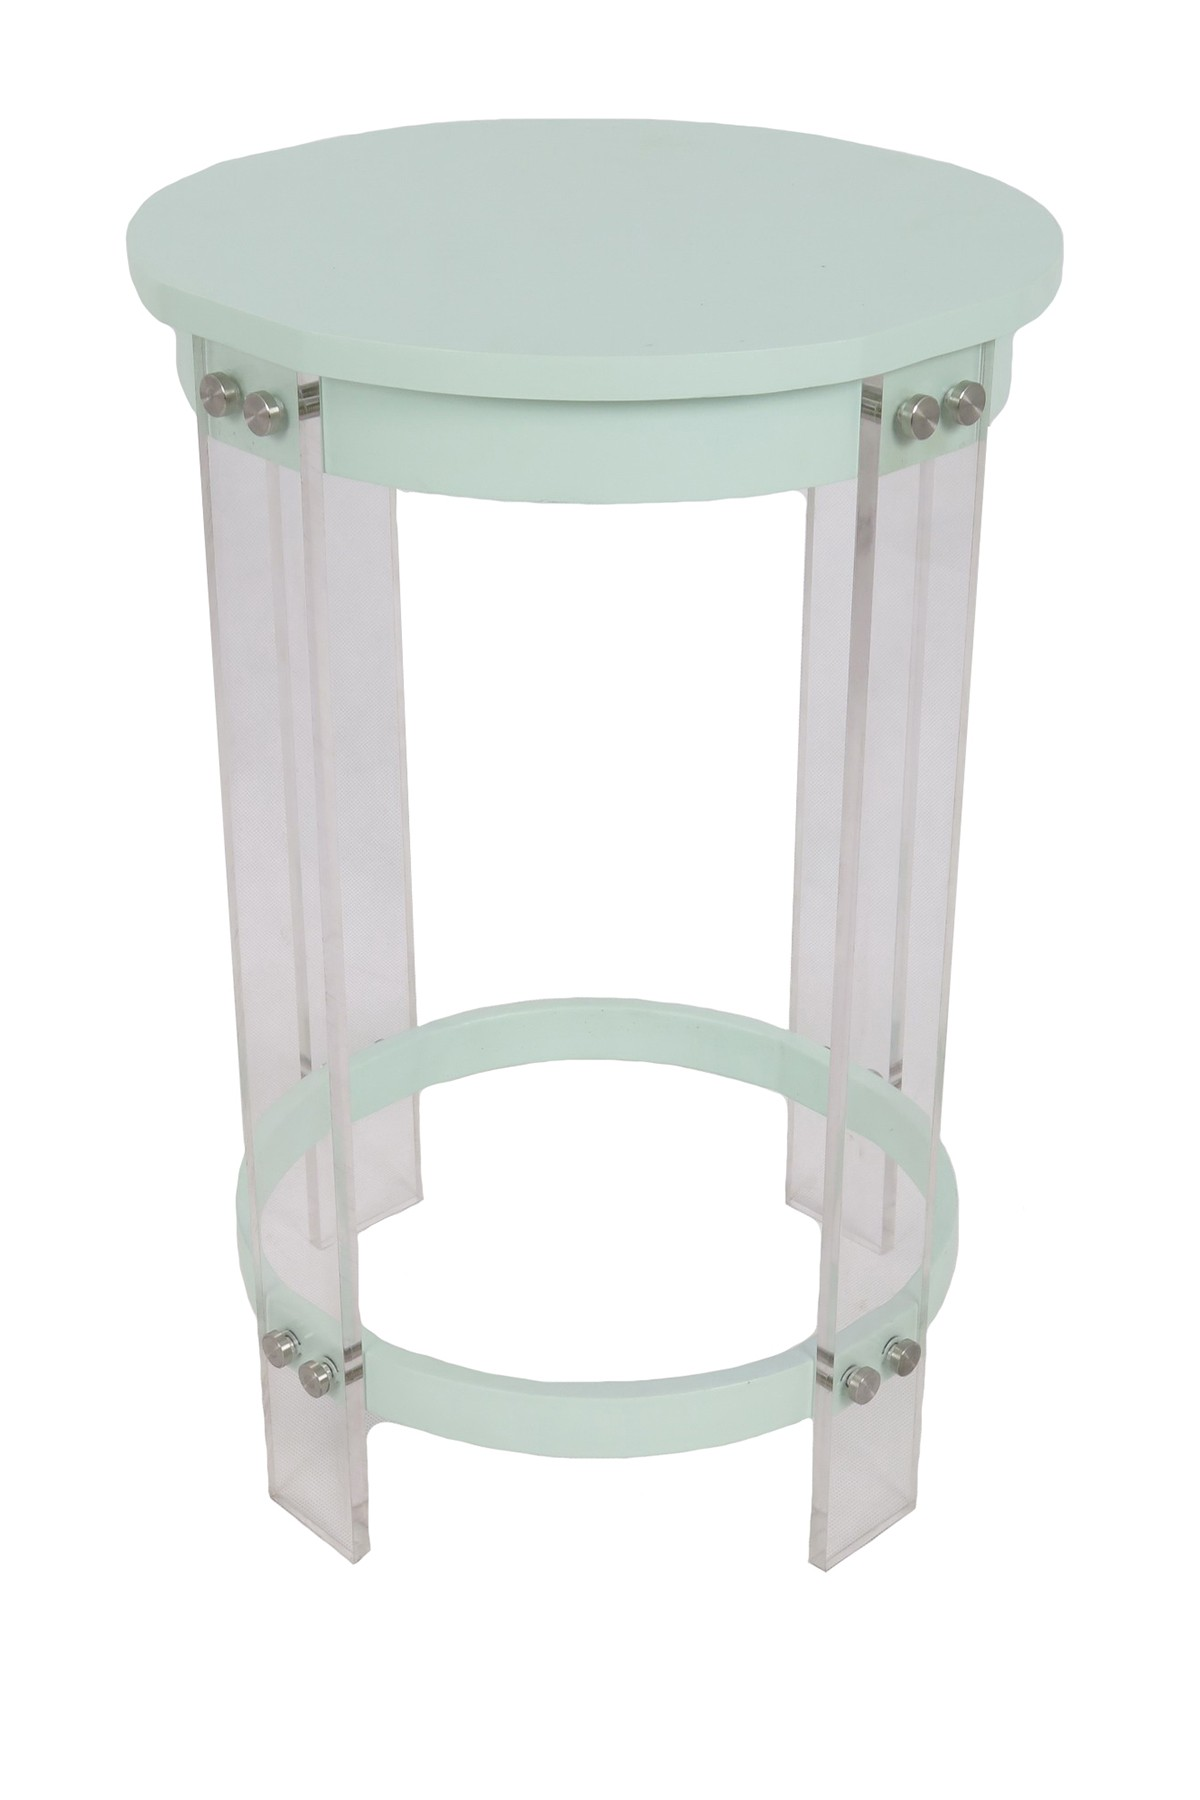 sagebrook home light blue acrylic mdf round accent table nordstrom rack chairs modern black lamp threshold wood and metal shower head ashley furniture armoire clear patio side